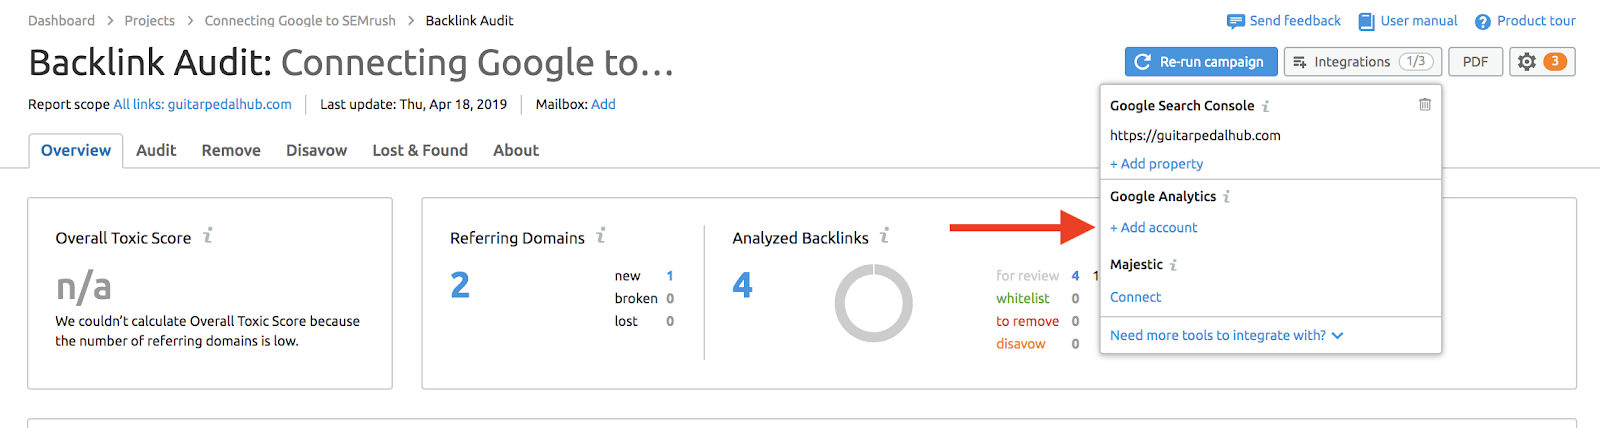 Connecting Backlink Audit to Google Accounts image 8